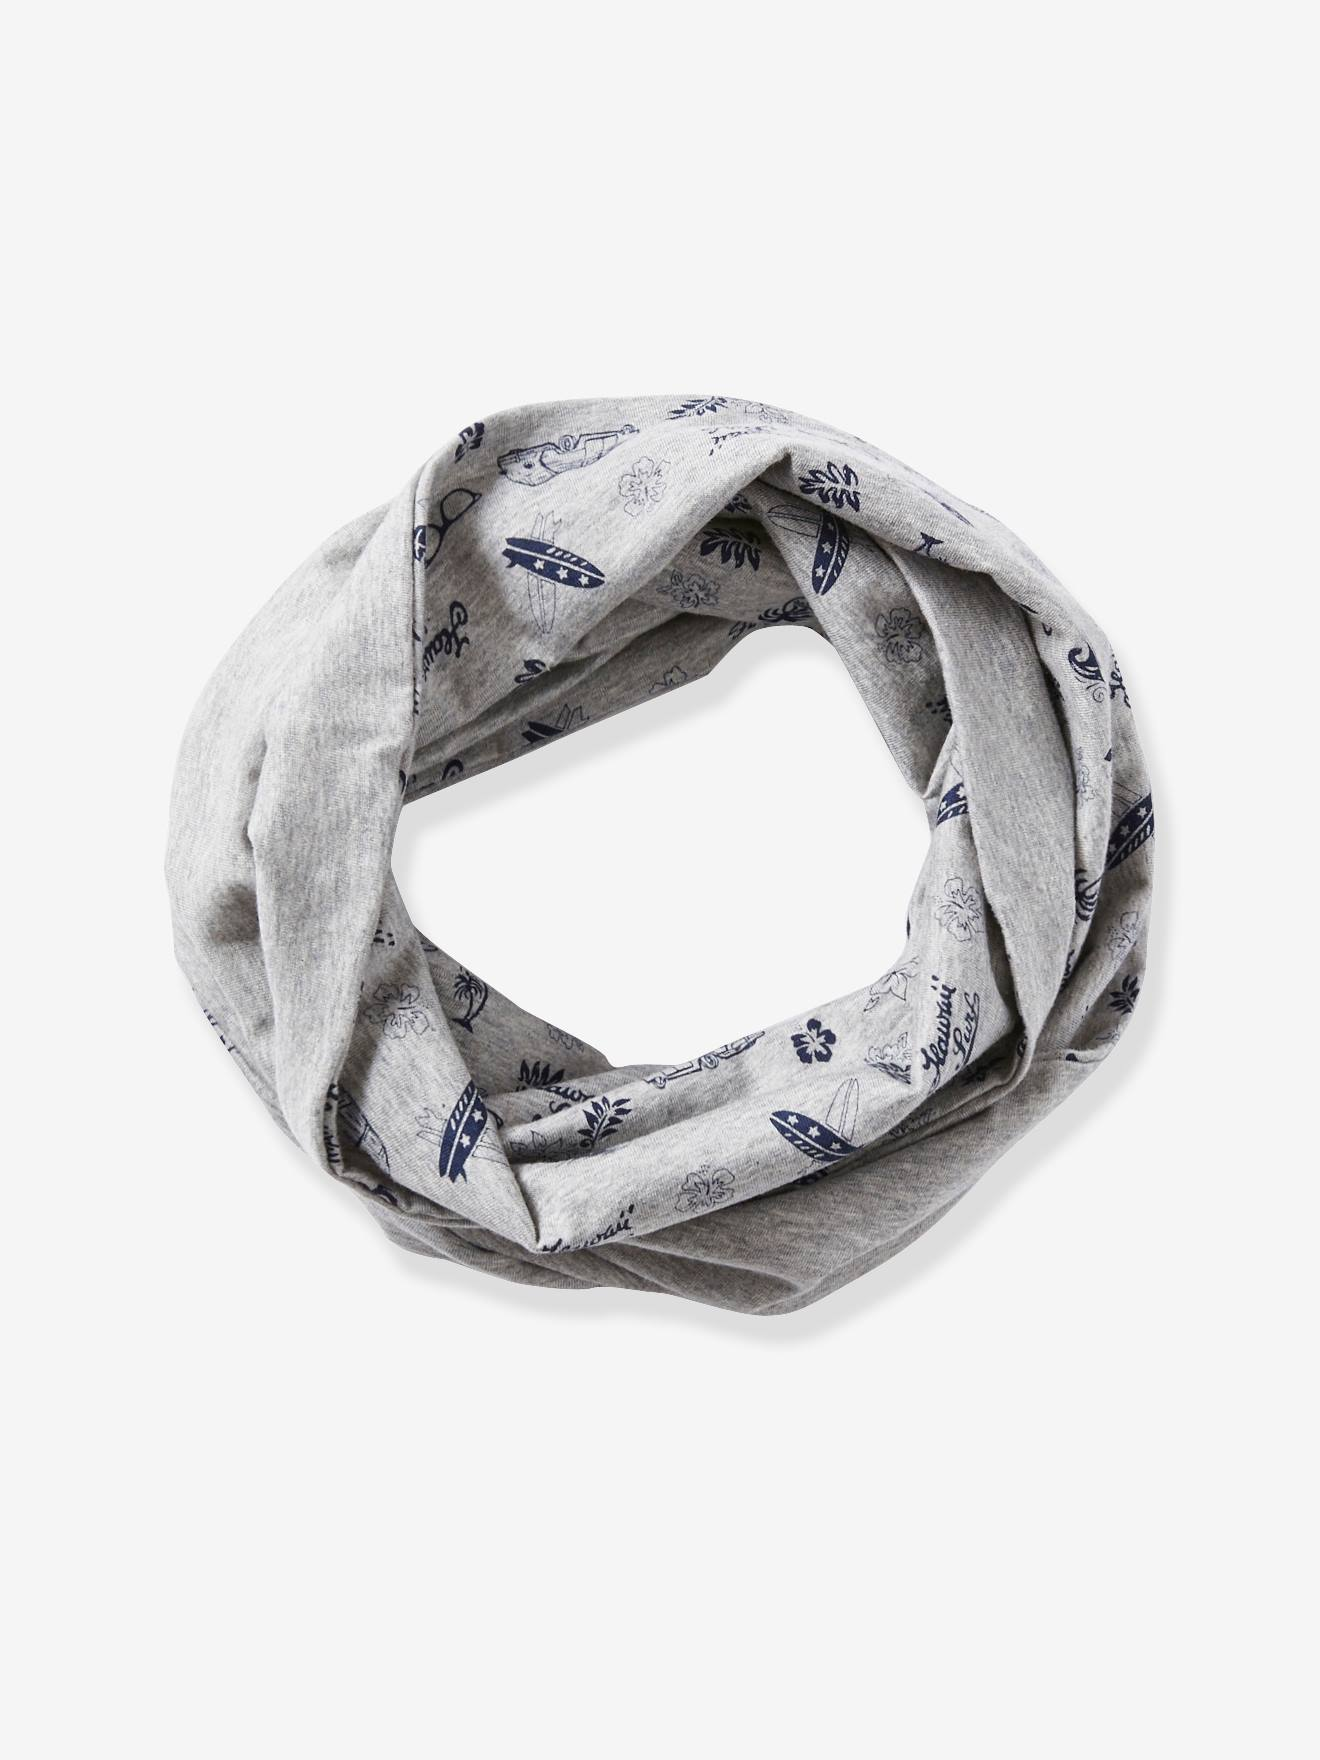 8dd5991cbc1da Infinity Scarf with Surf Motif, for Boys - grey light mixed color, Boys